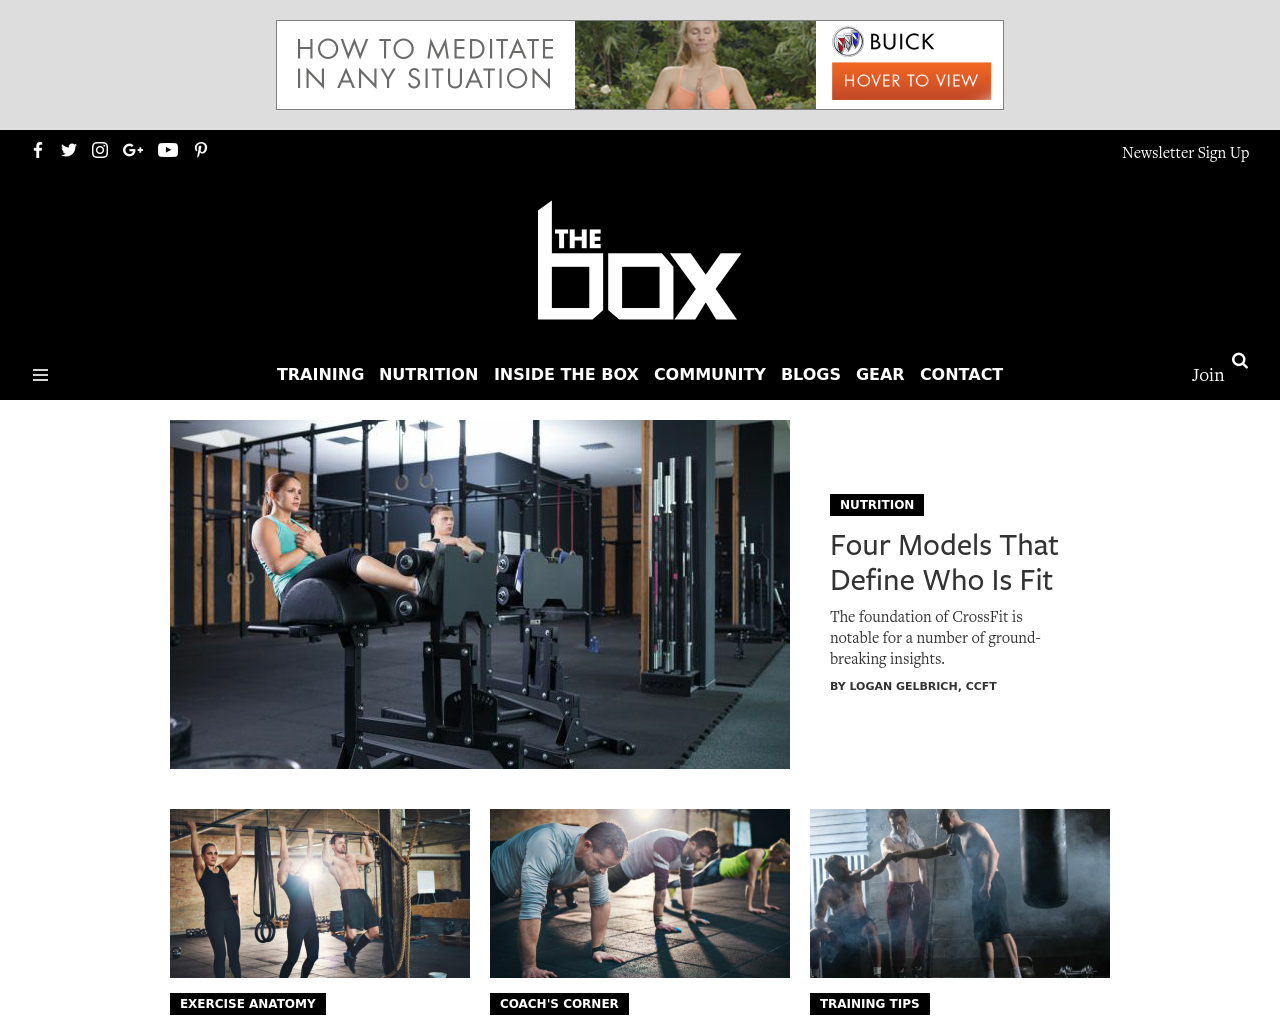 The-Box-Advertising-Reviews-Pricing